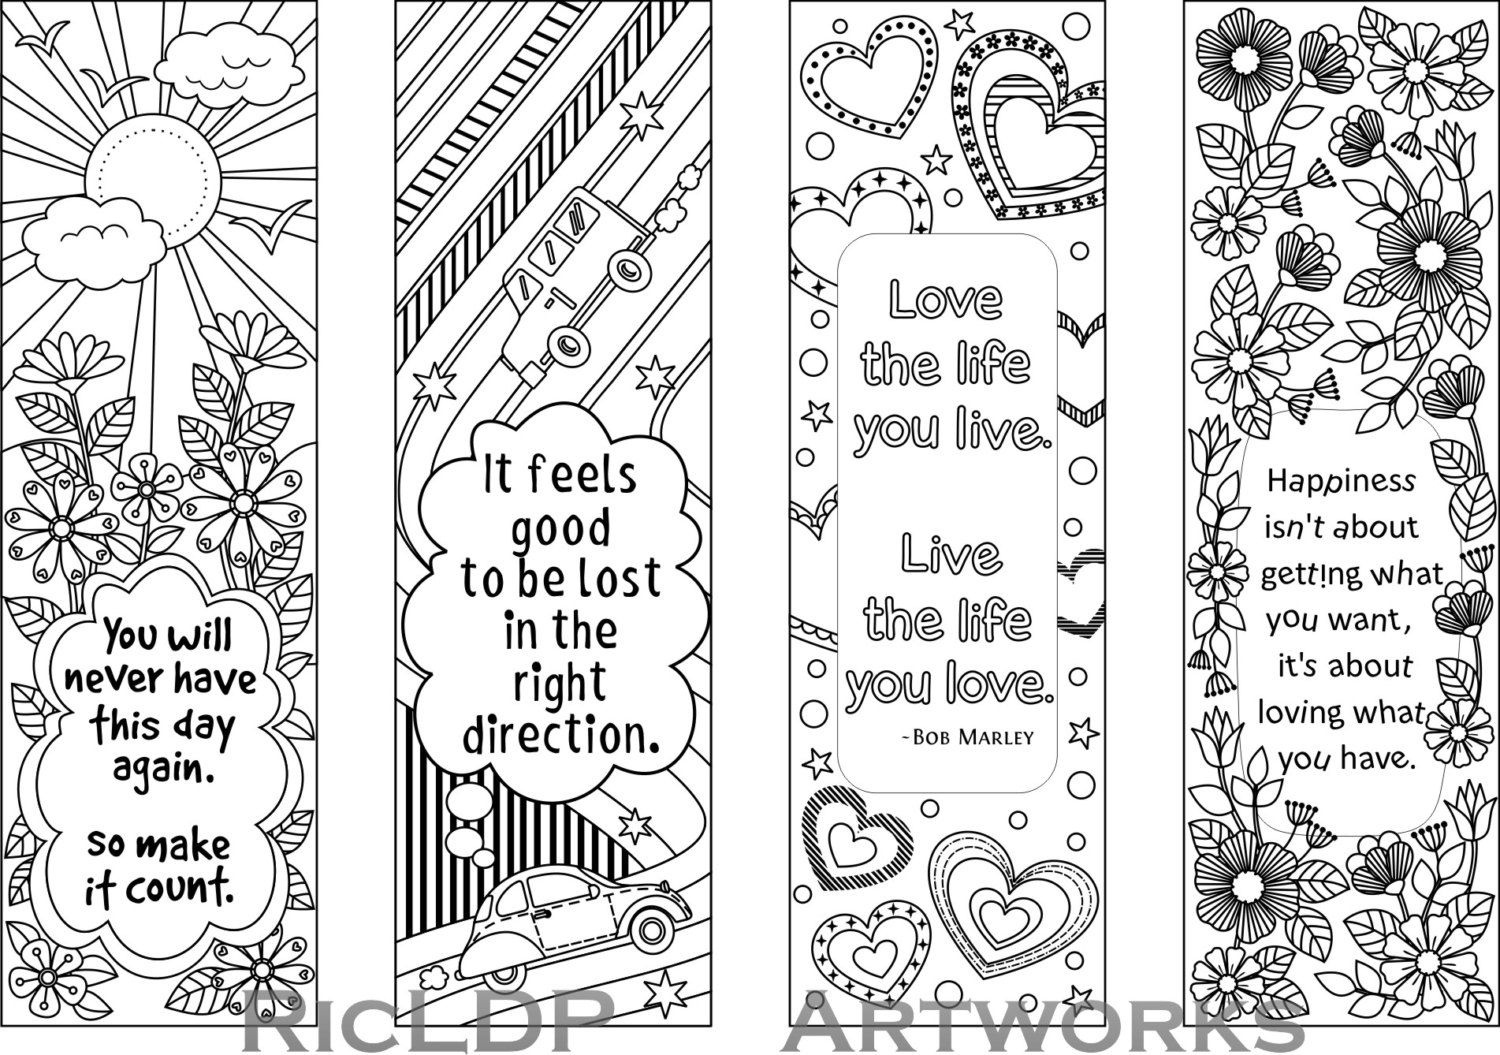 Set Of 4 Coloring Bookmarks With Quotes, Bookmark Templates With - Free Printable Bookmarks To Color